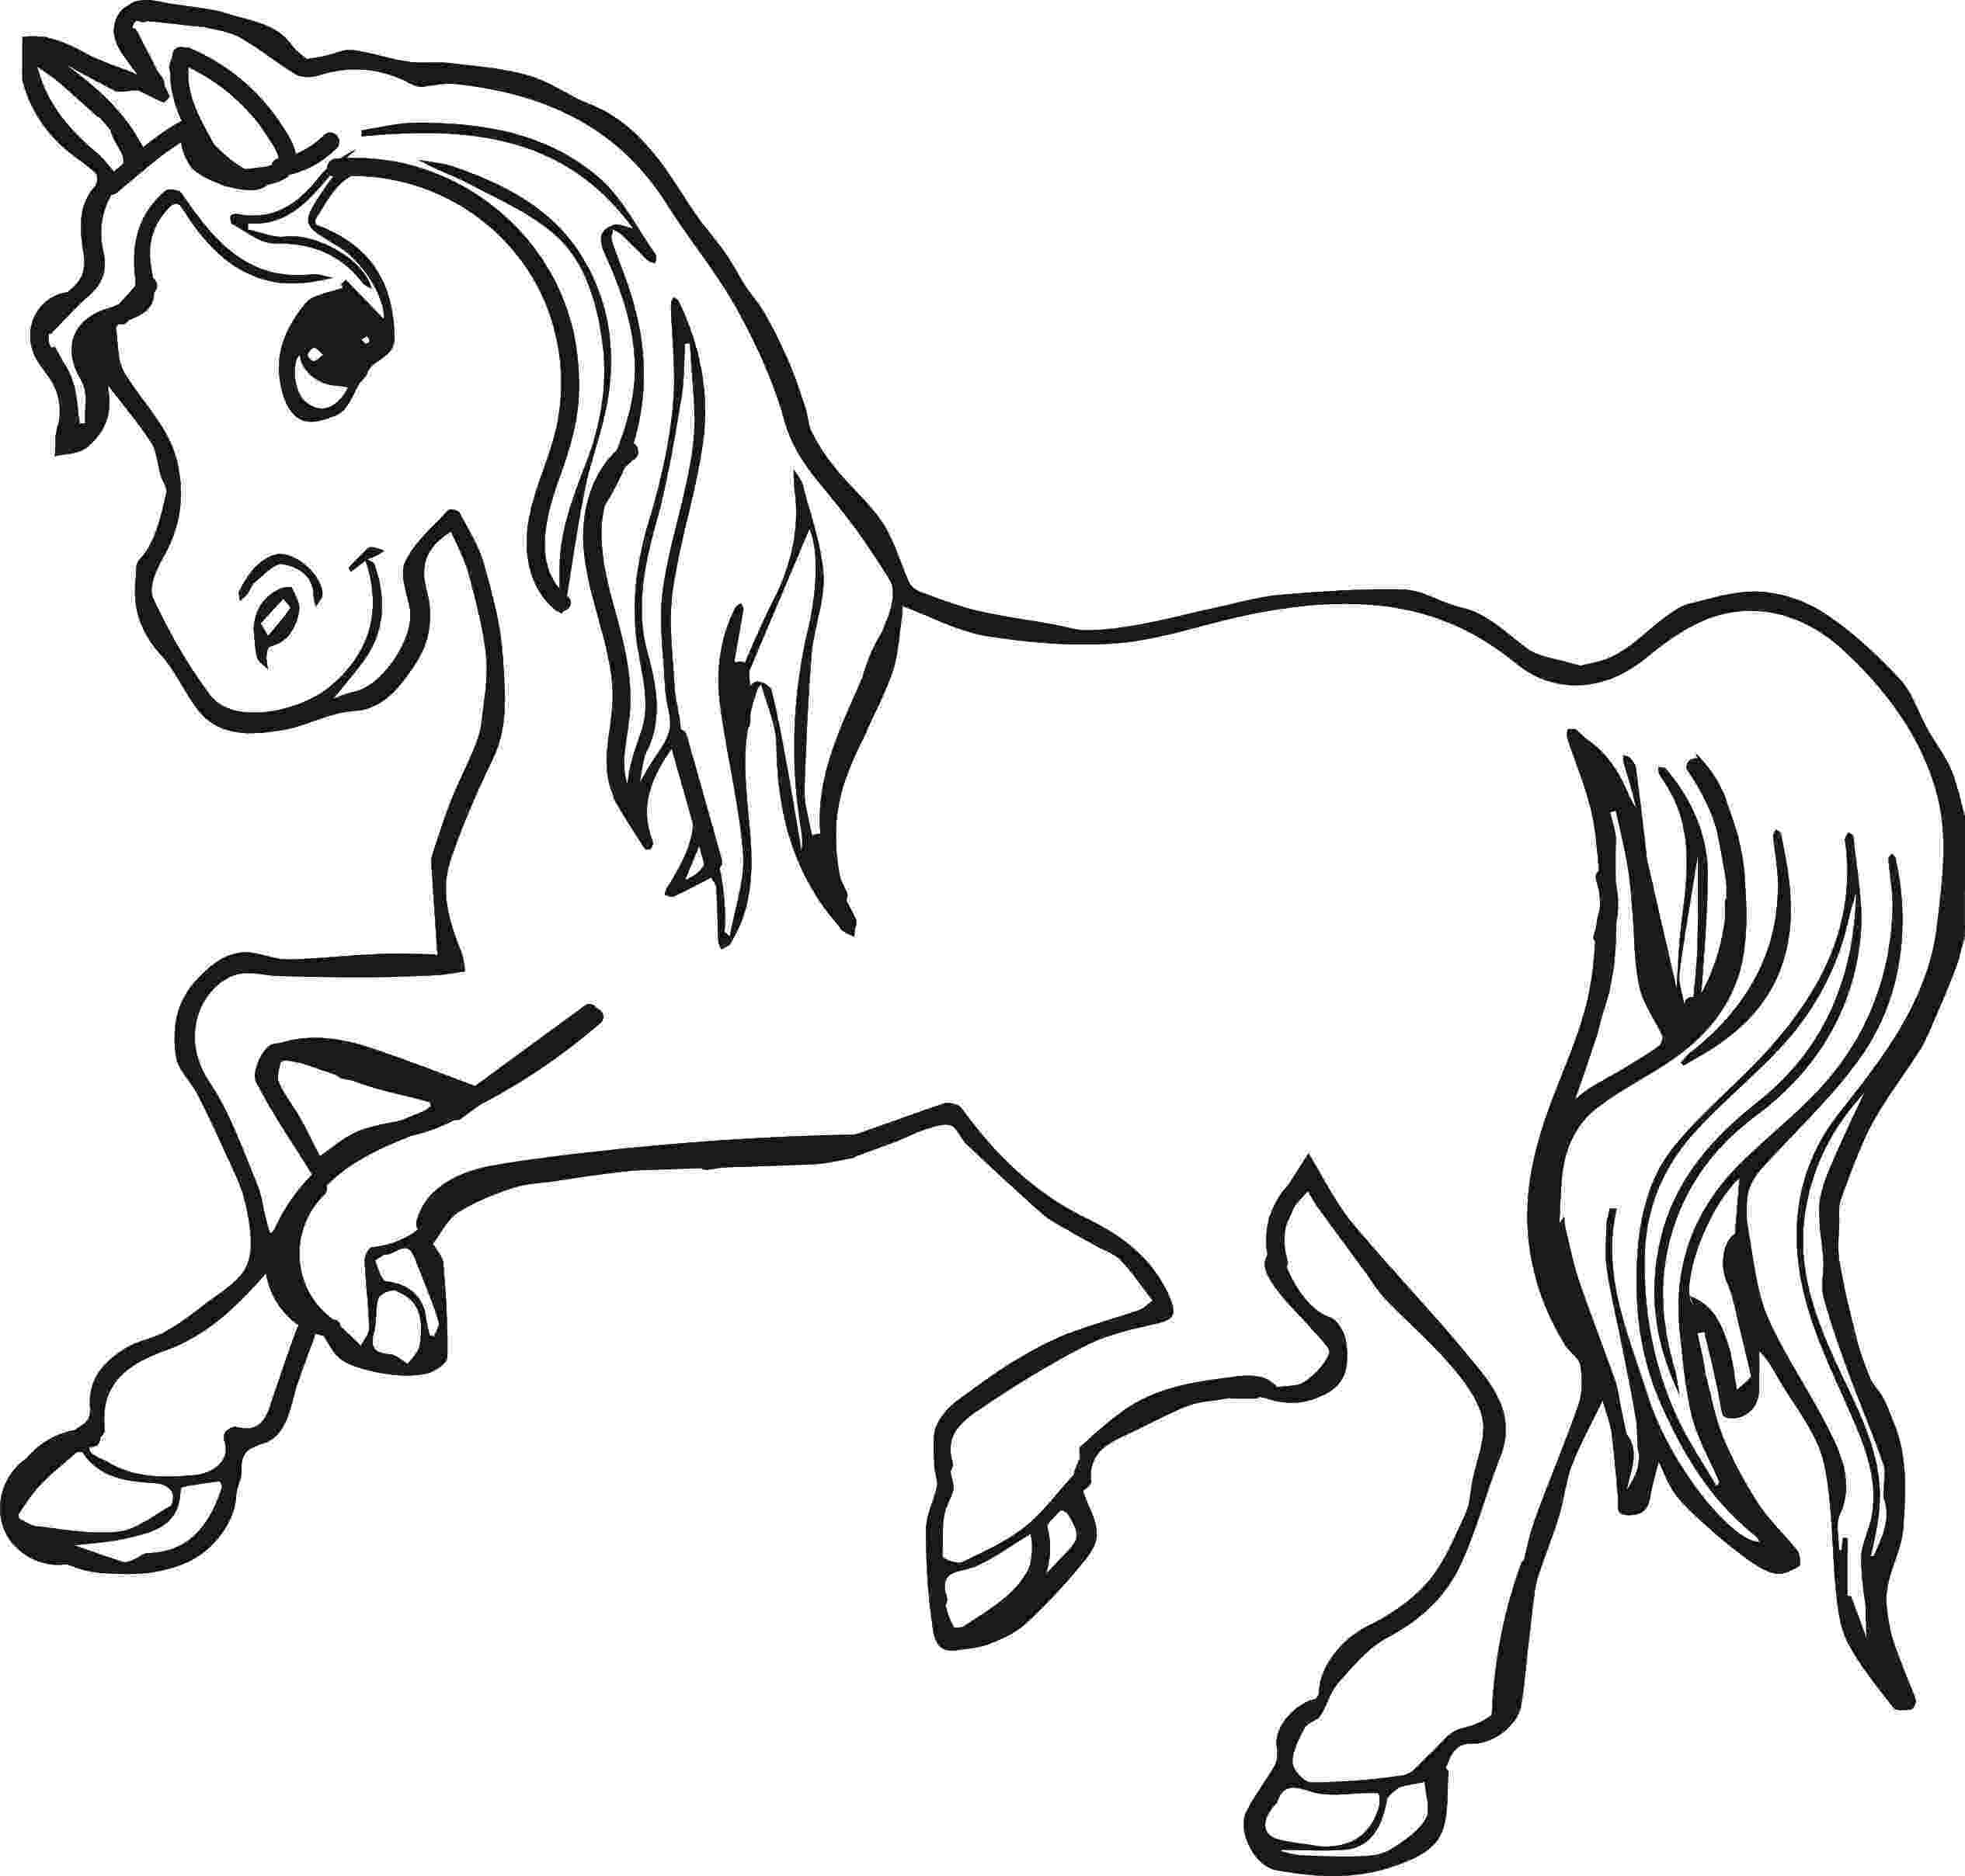 horse coloring images horse coloring pages for kids coloring pages for kids images coloring horse